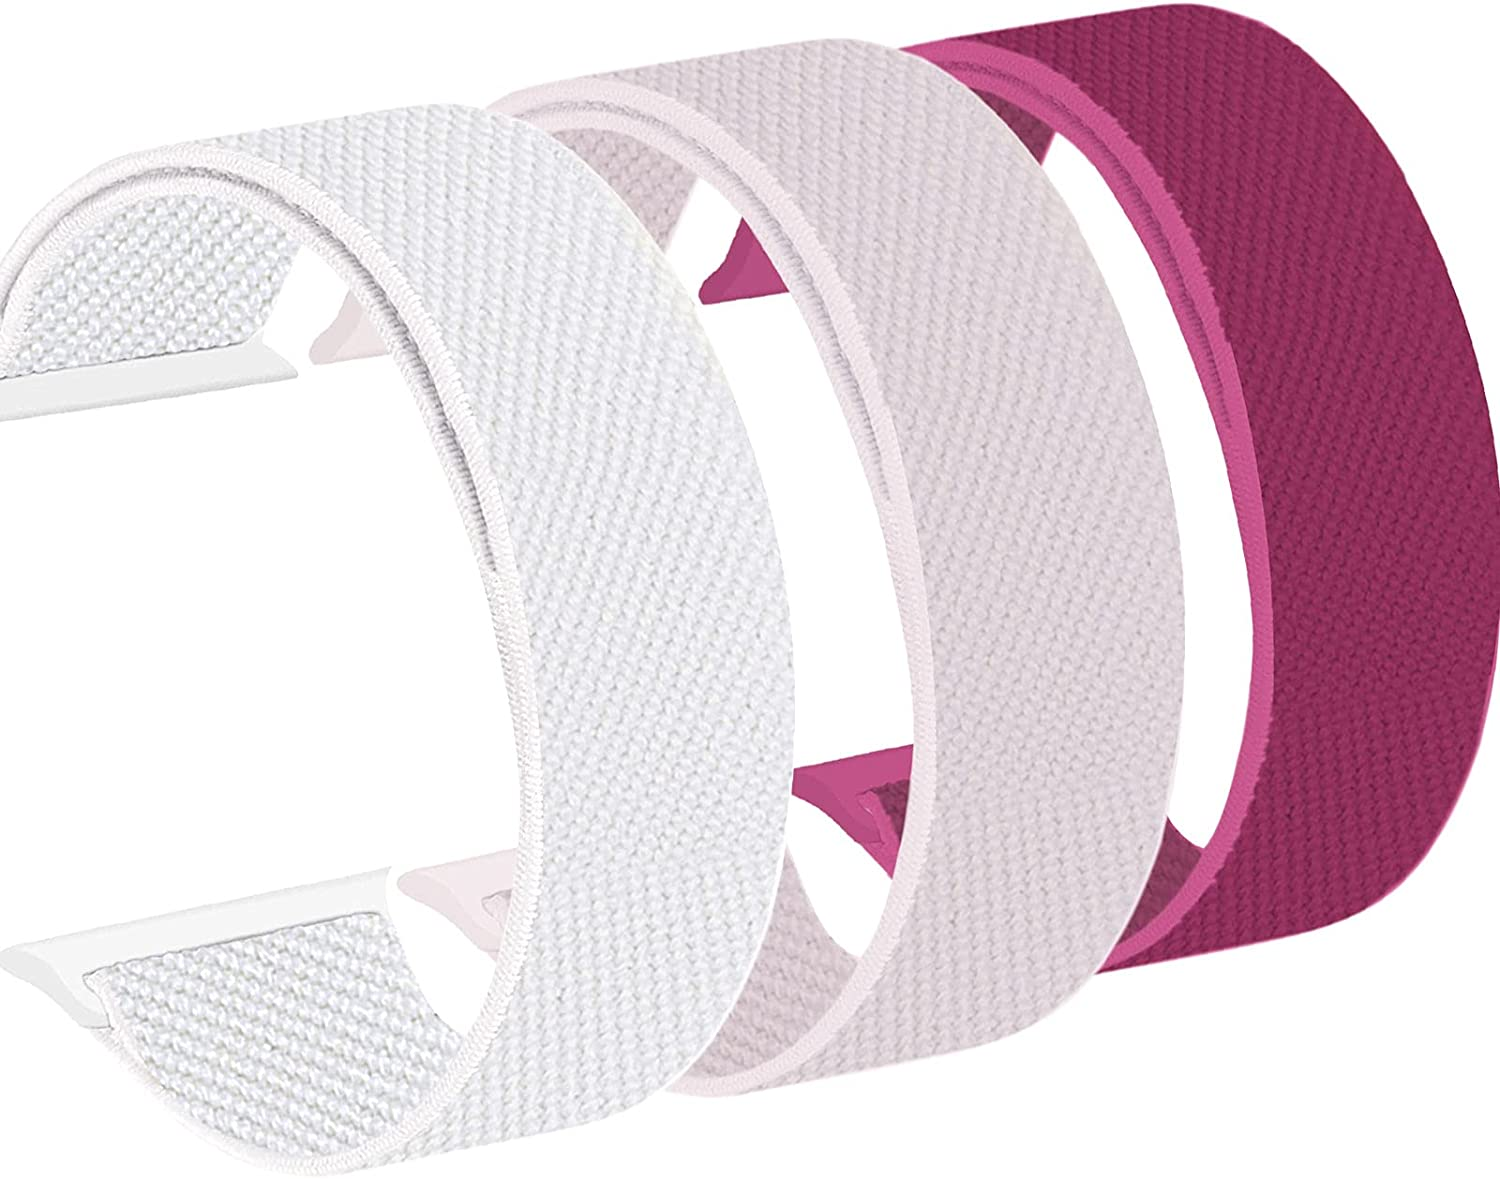 WAAILU Compatible with Apple Watch Bands Series SE/6/5/4/3/2/1, 3 Pack of Sport Watch Band for Women&Men, Breathable Soft Velcro Nylon Compatible with iWatch 38mm 40mm 42mm 44mm